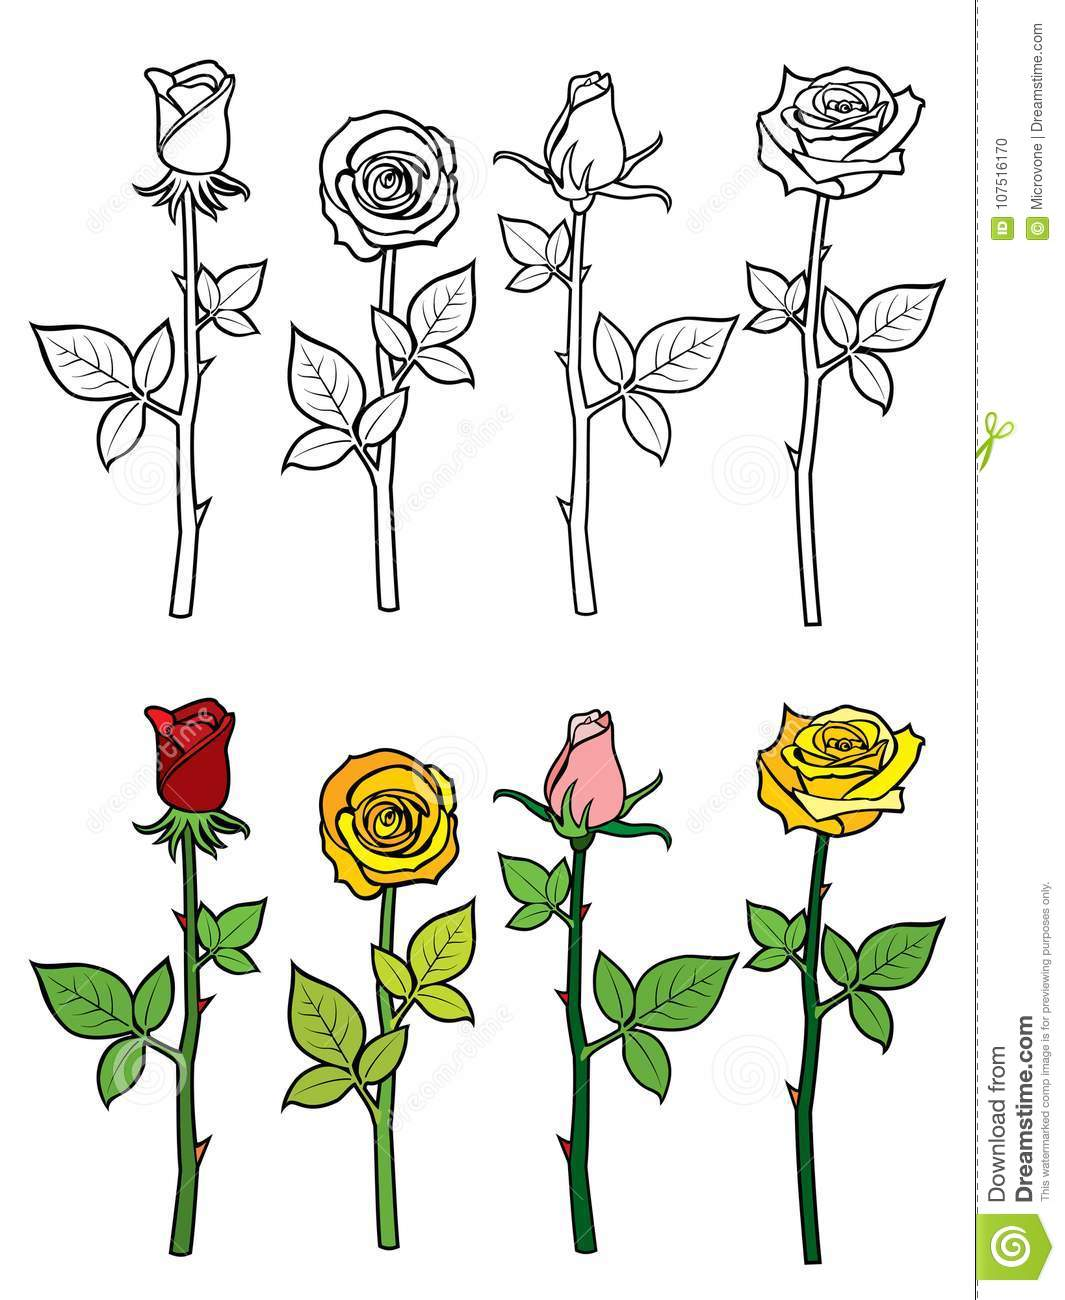 hand drawn rose coloring page stock vector illustration of doodle